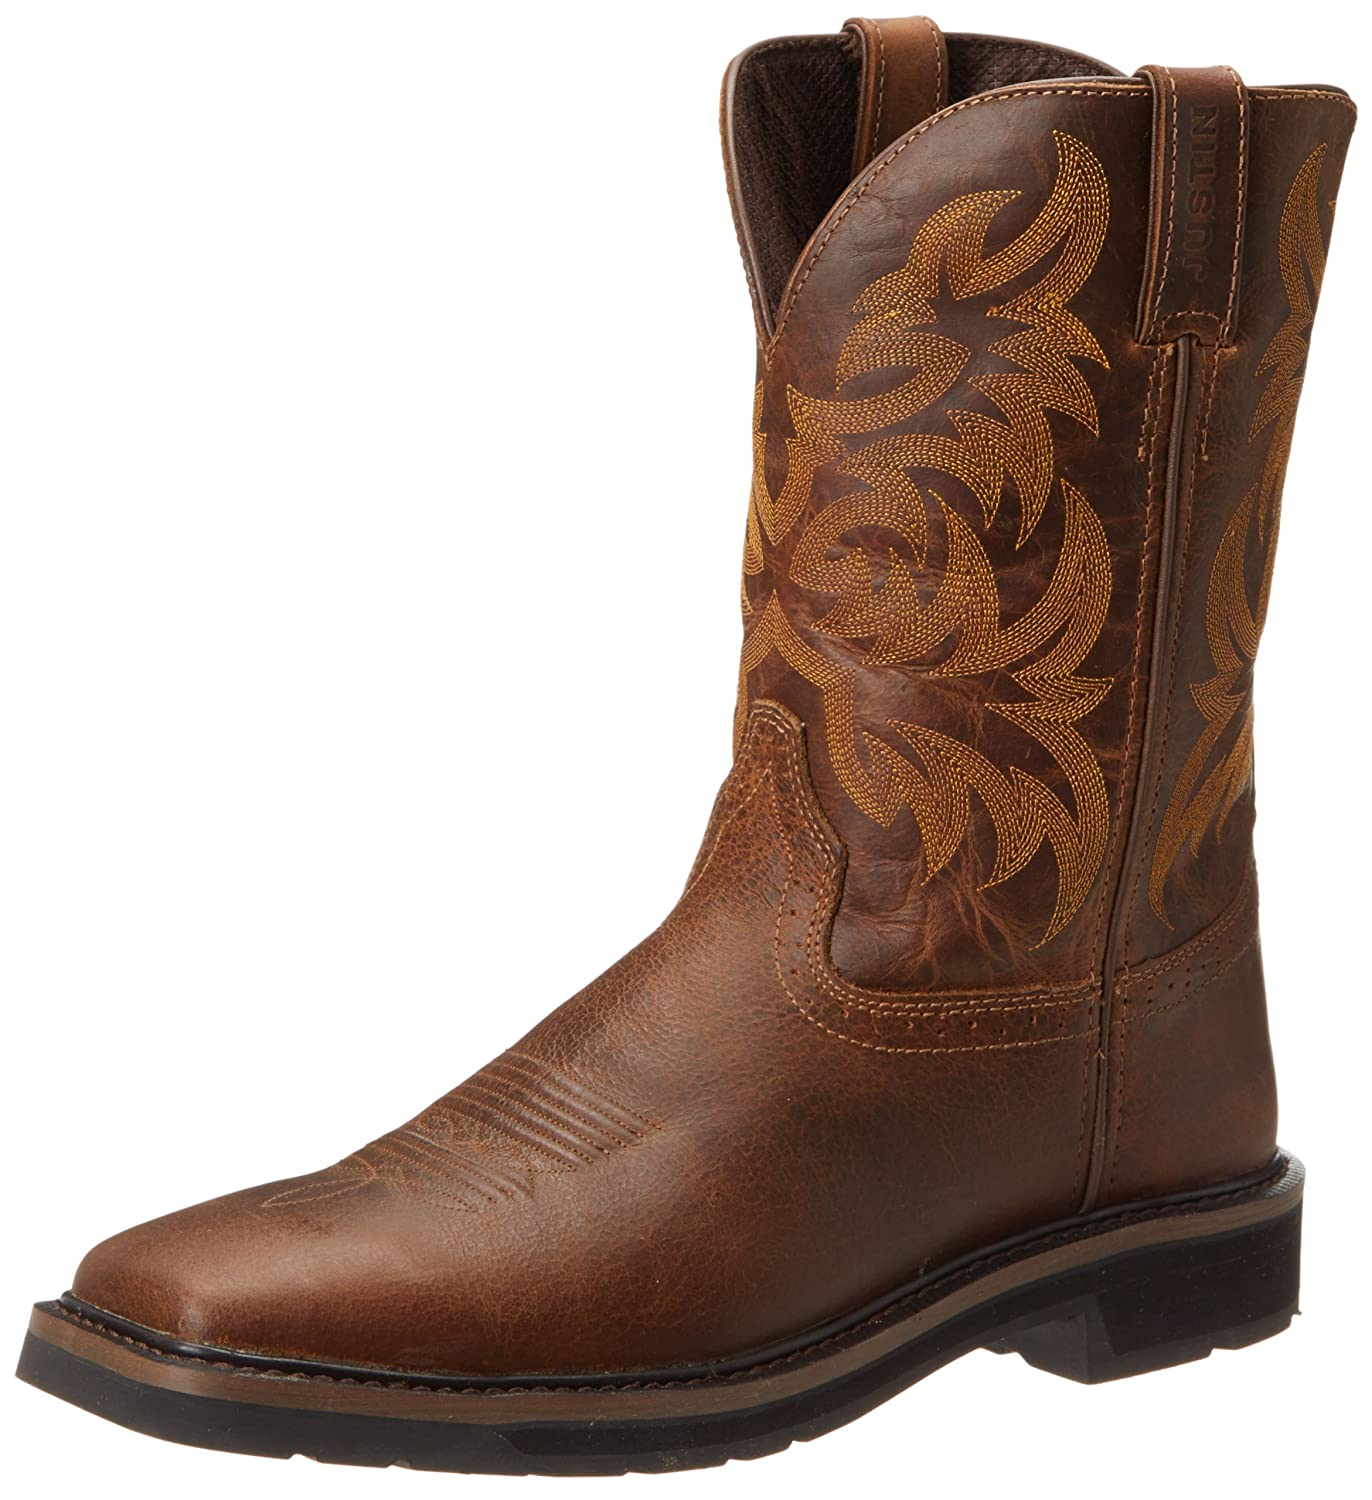 446da082cac Justin Original Work Boots Men's Stampede Pull-On Square Toe Work Boot